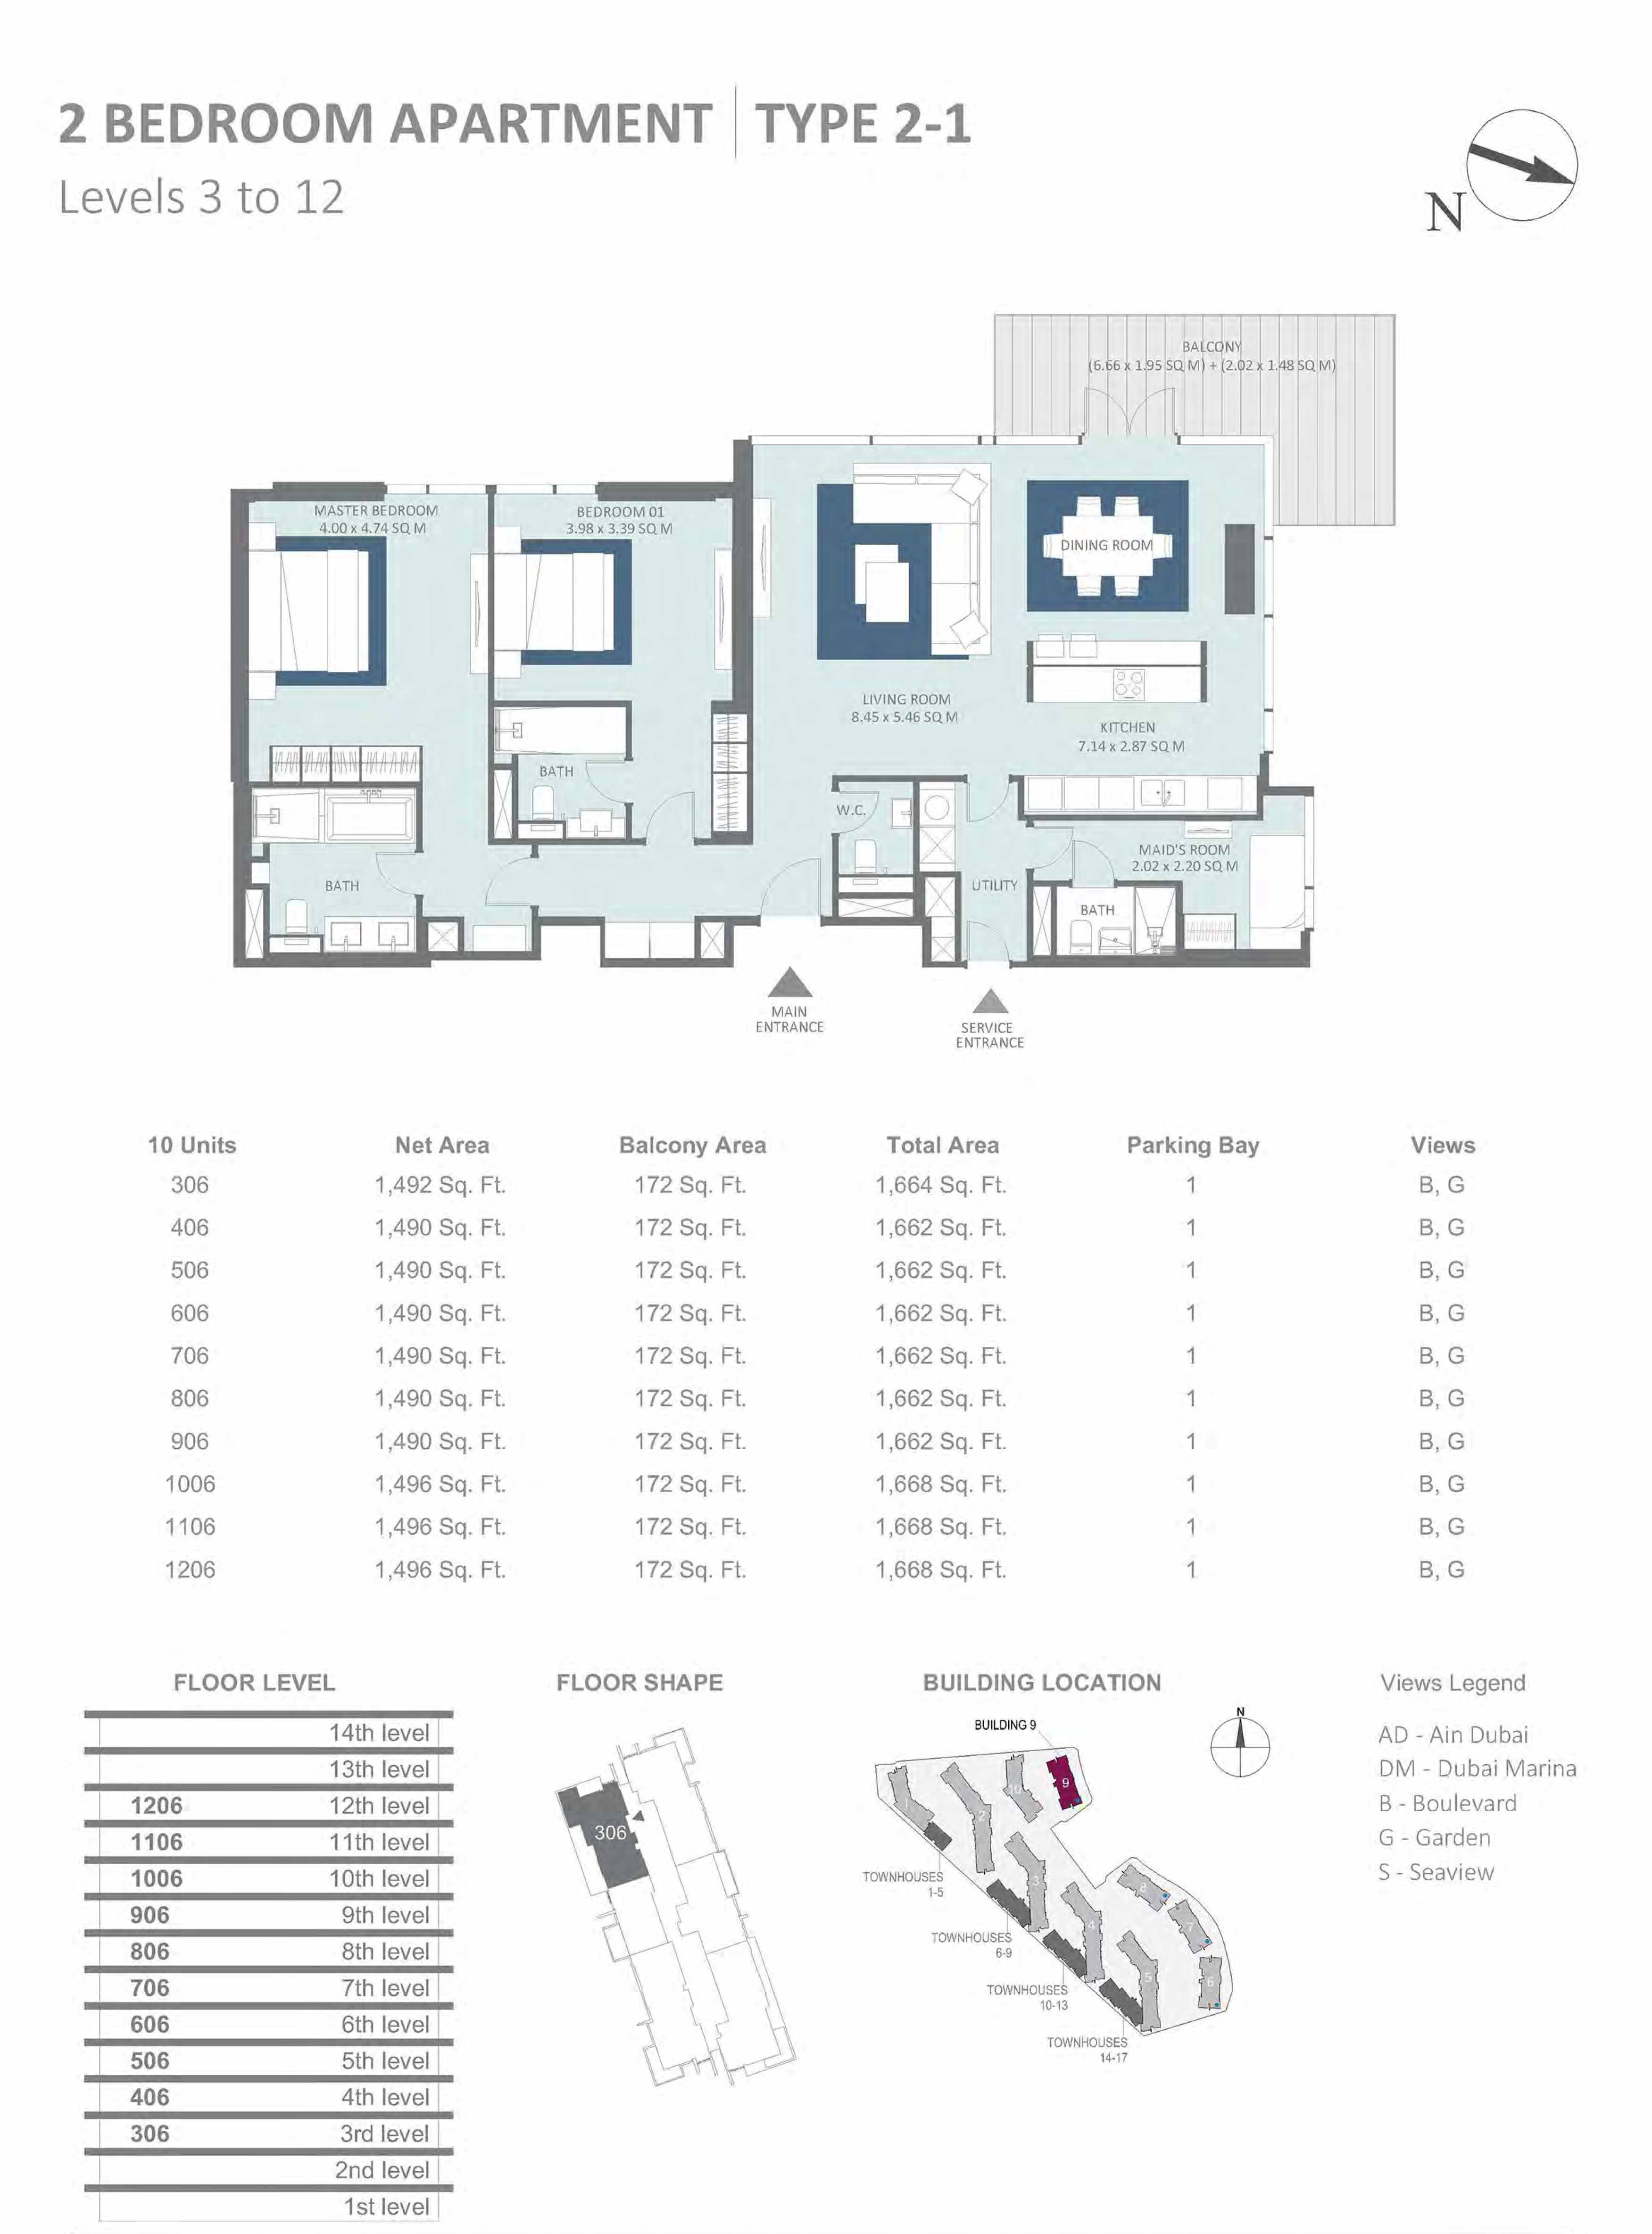 Building 9 - 2 Bedroom Type 2-1, Level 3 to 12 Size 1662 to 1668  sq. ft.